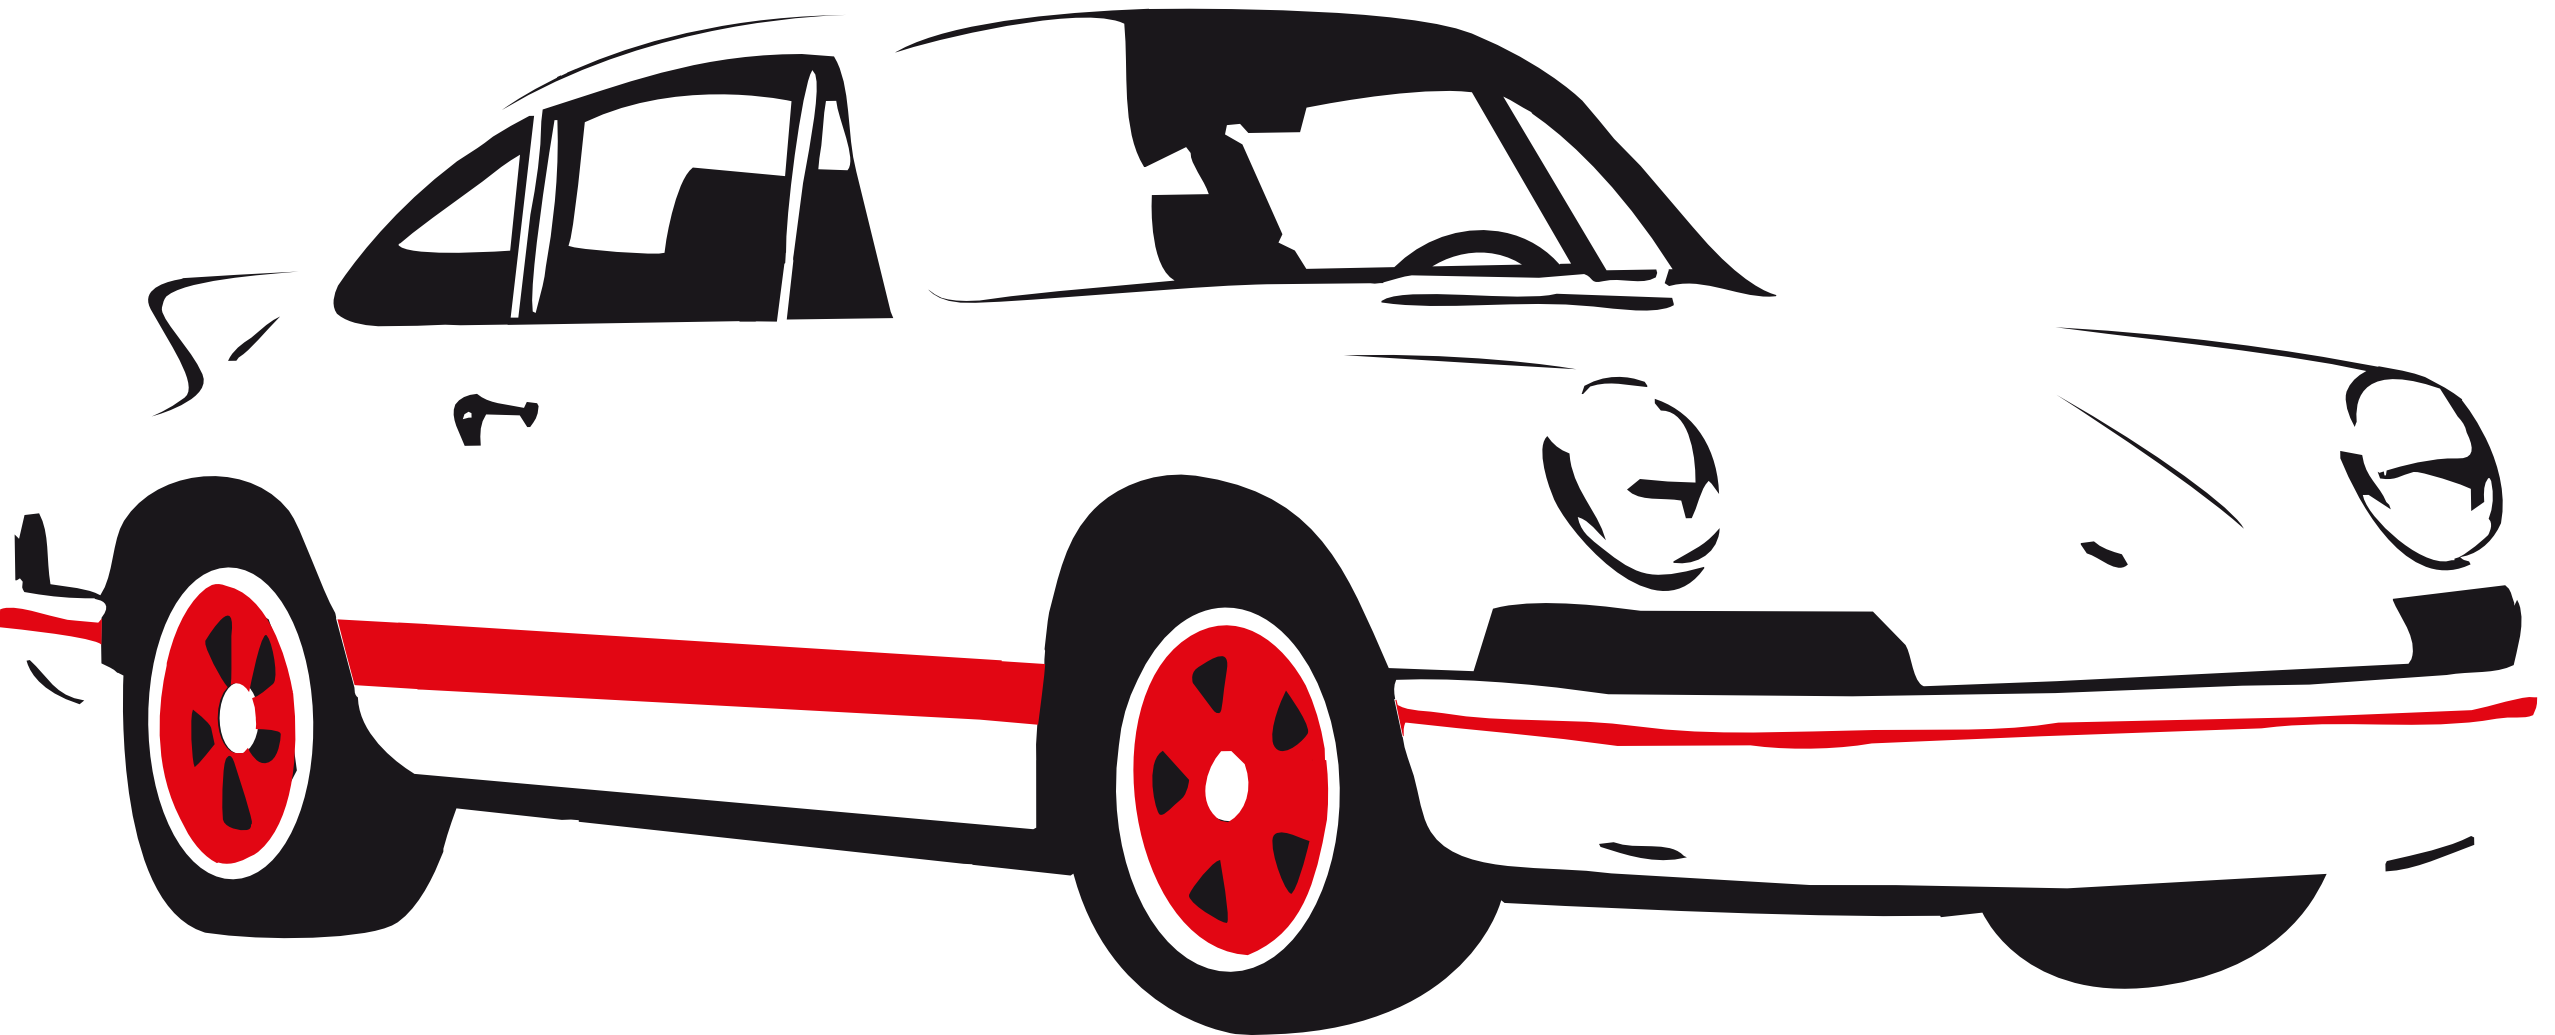 2555x1035 Free Vector Graphic Car Silhouette Vehicle Auto Image Clipart